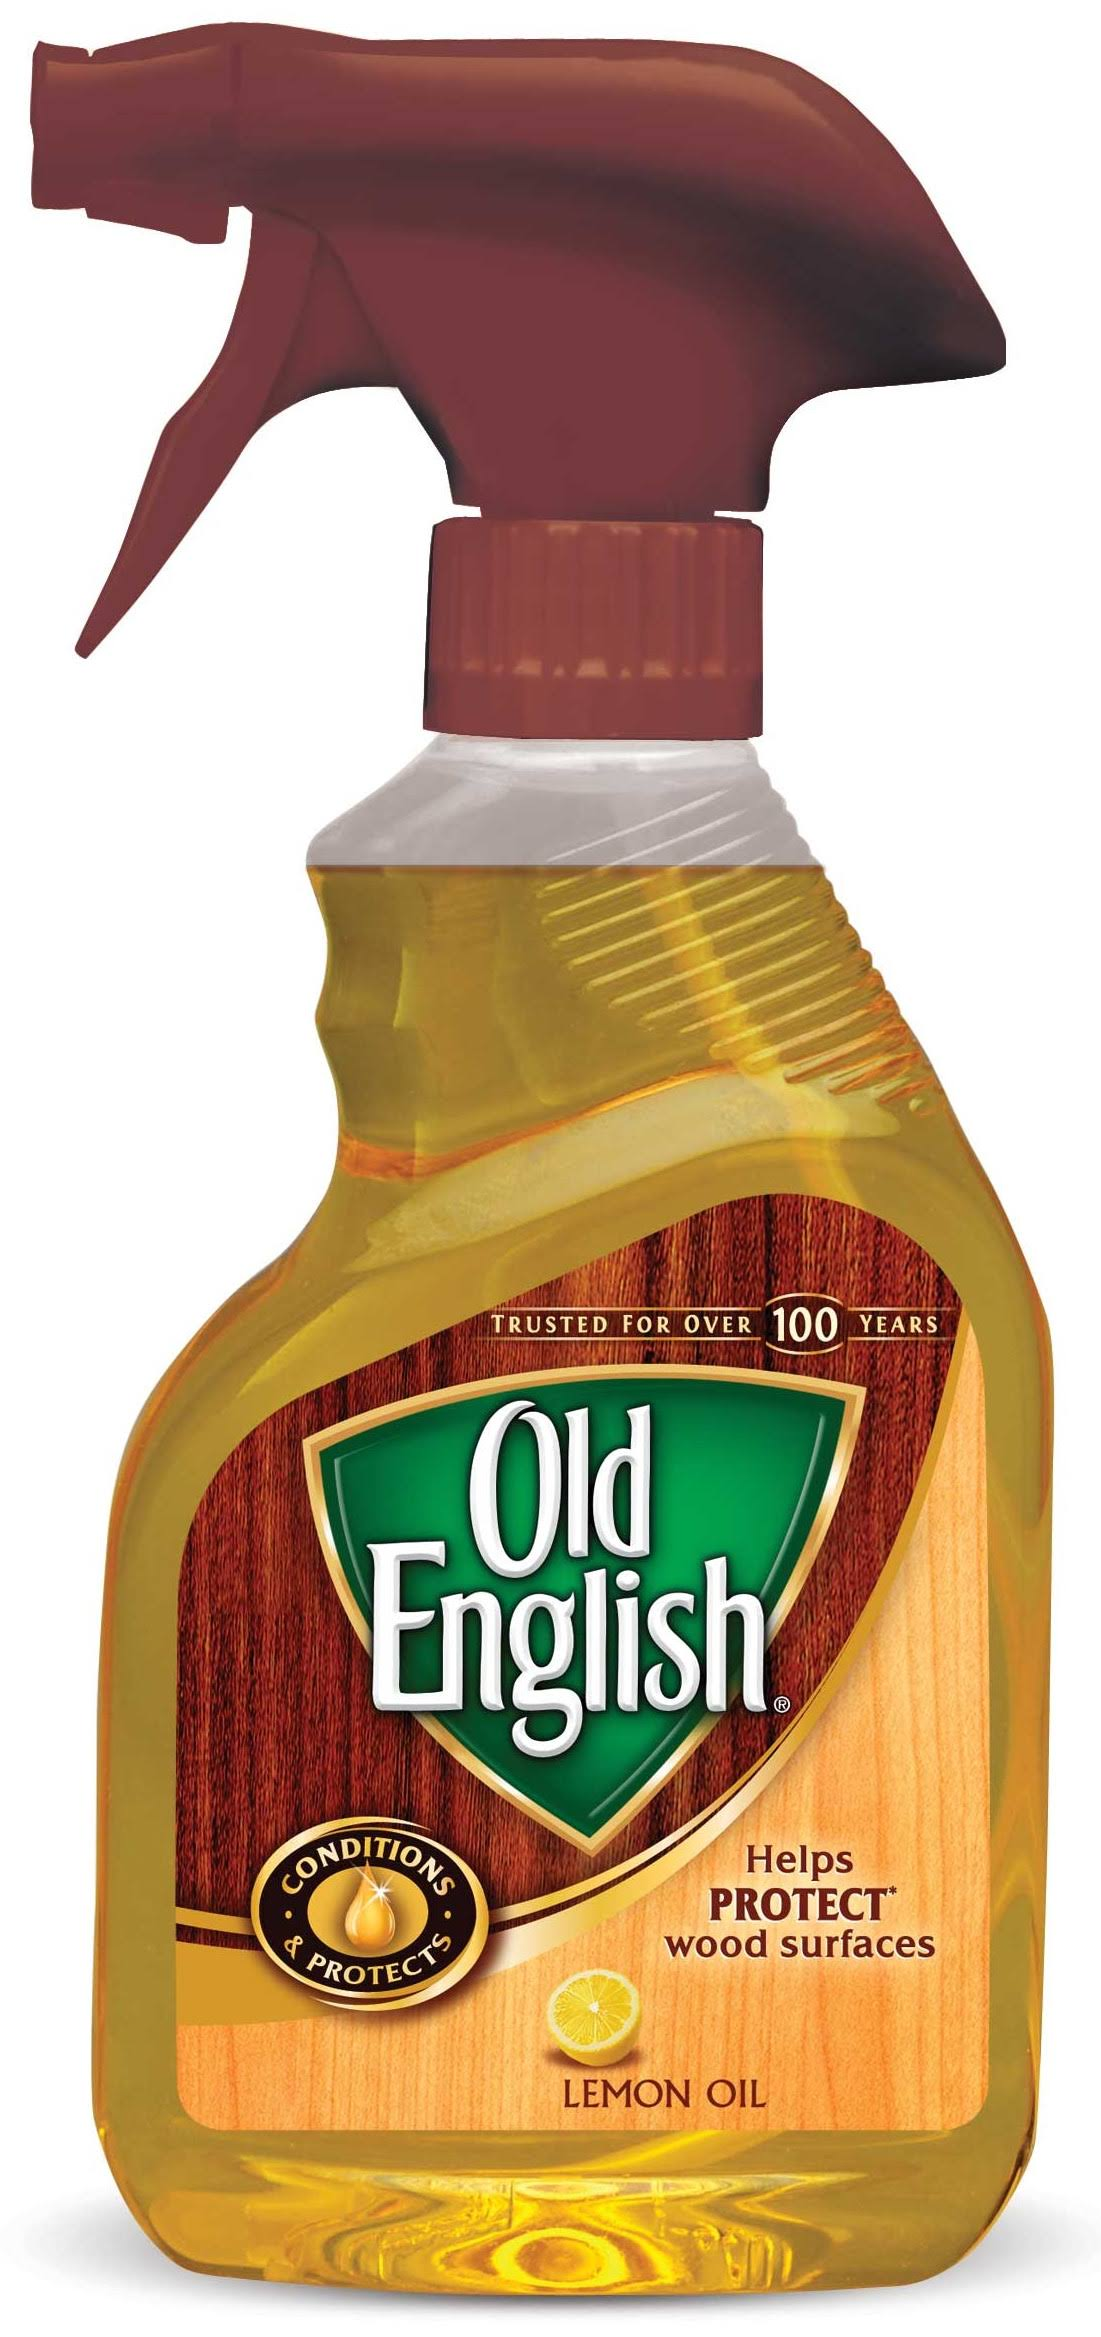 Old English Furniture Polish - Lemon Oil, 12oz Spray Bottle